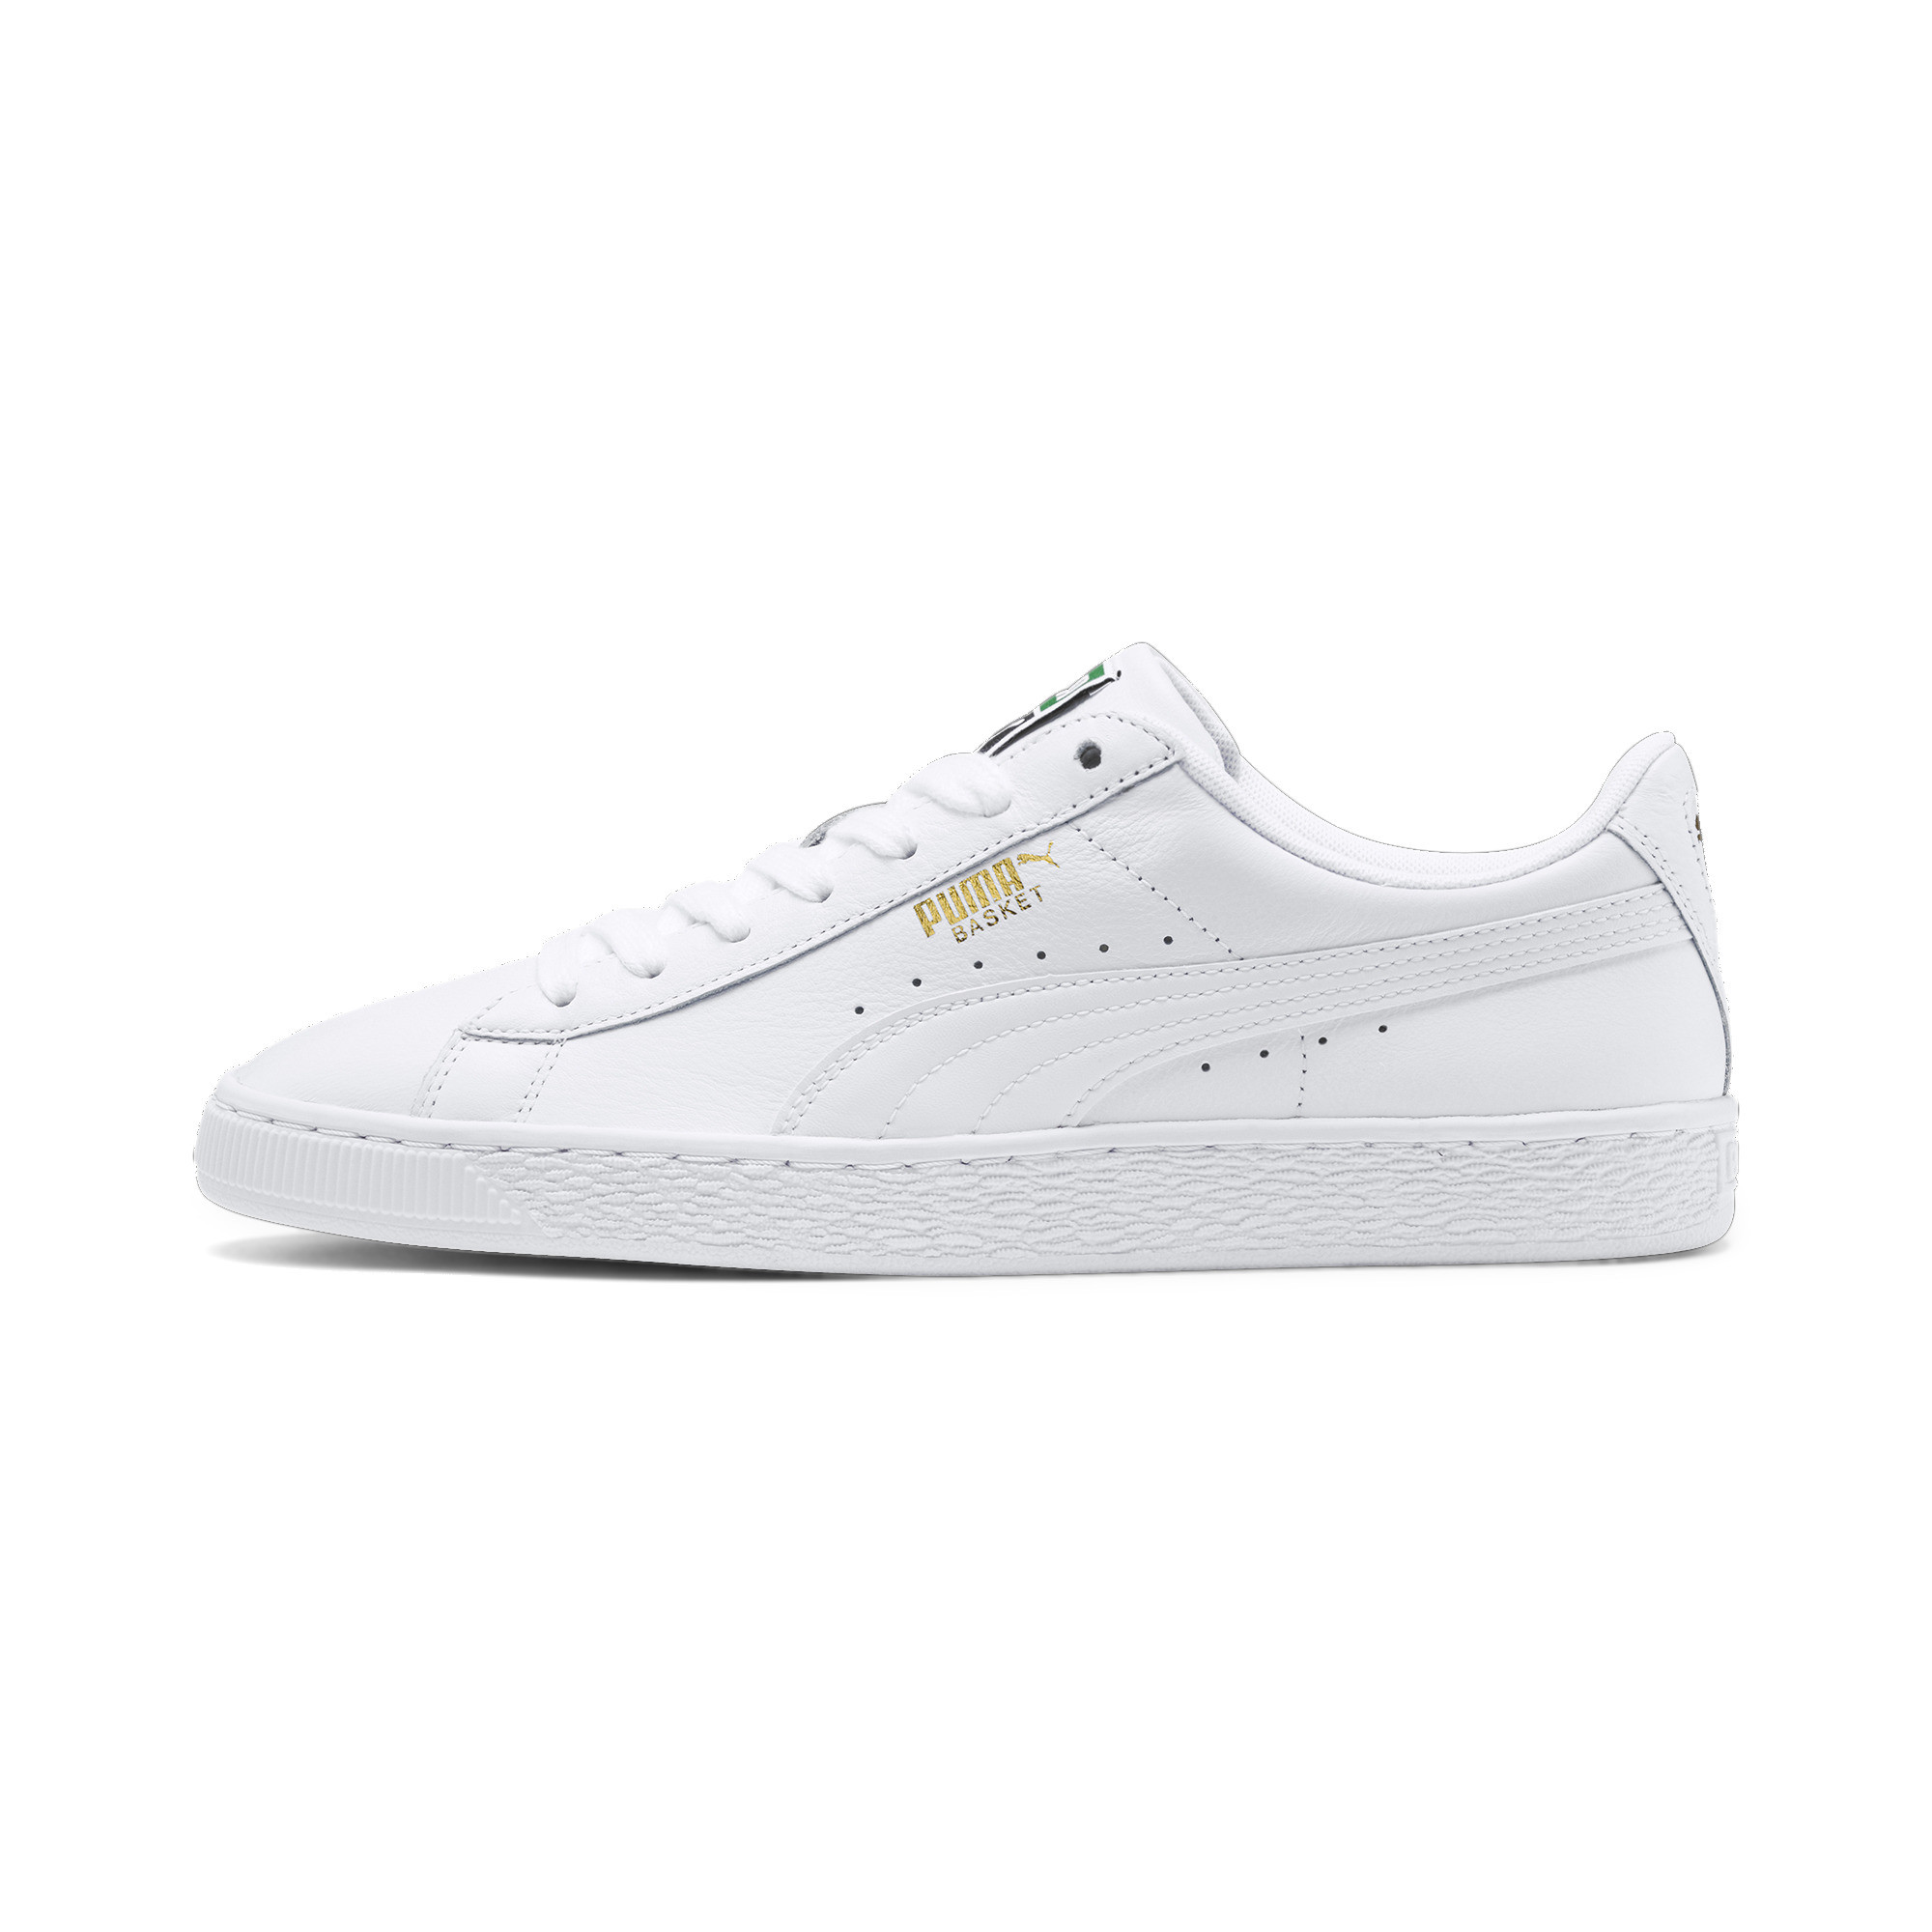 new style 8fbb1 a5864 Details about PUMA Heritage Basket Classic Sneakers Men Shoe Sport Shoe